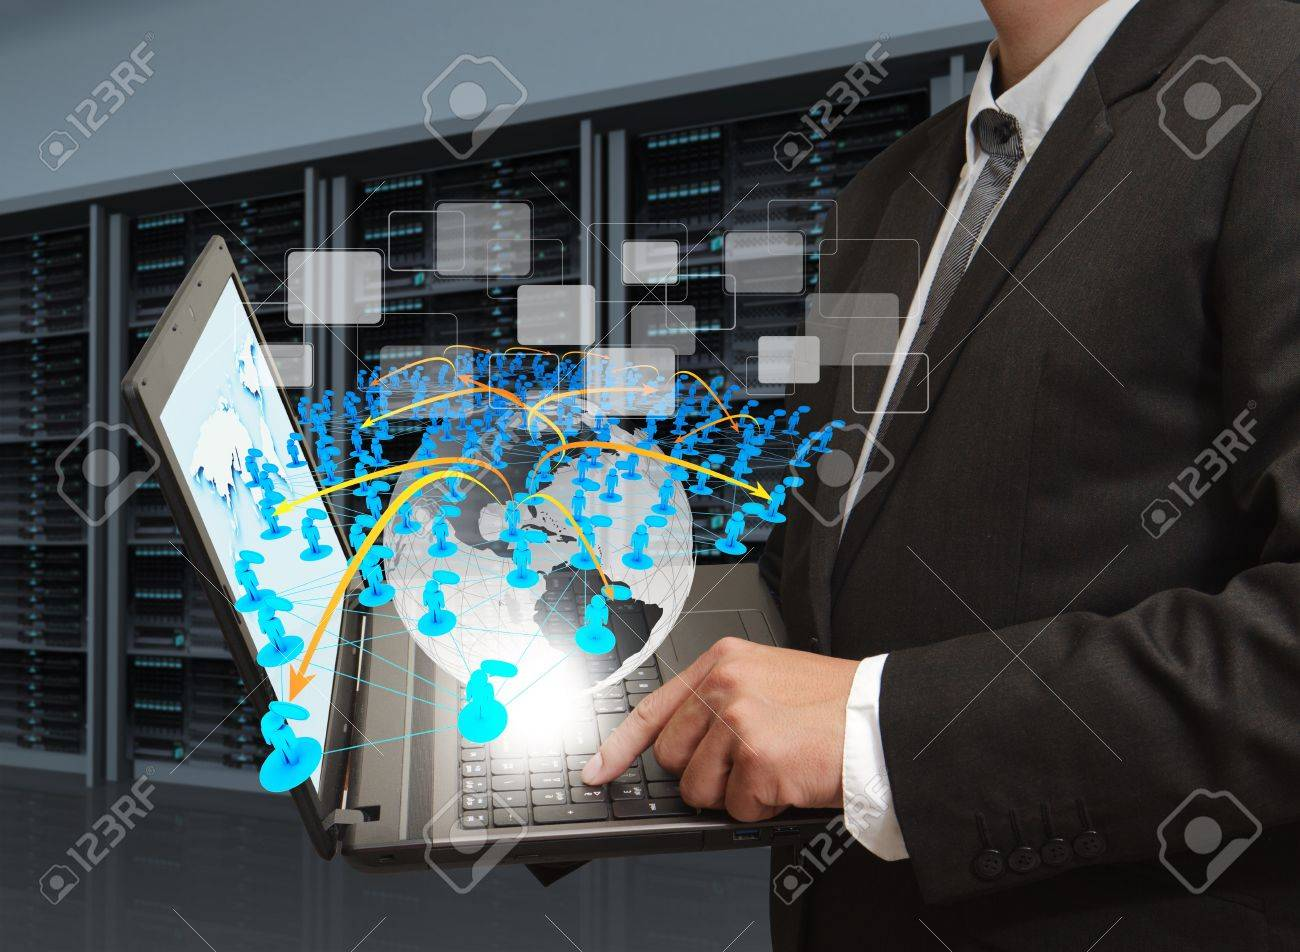 business man holds laptop computer and social network in server room Stock Photo - 13181572